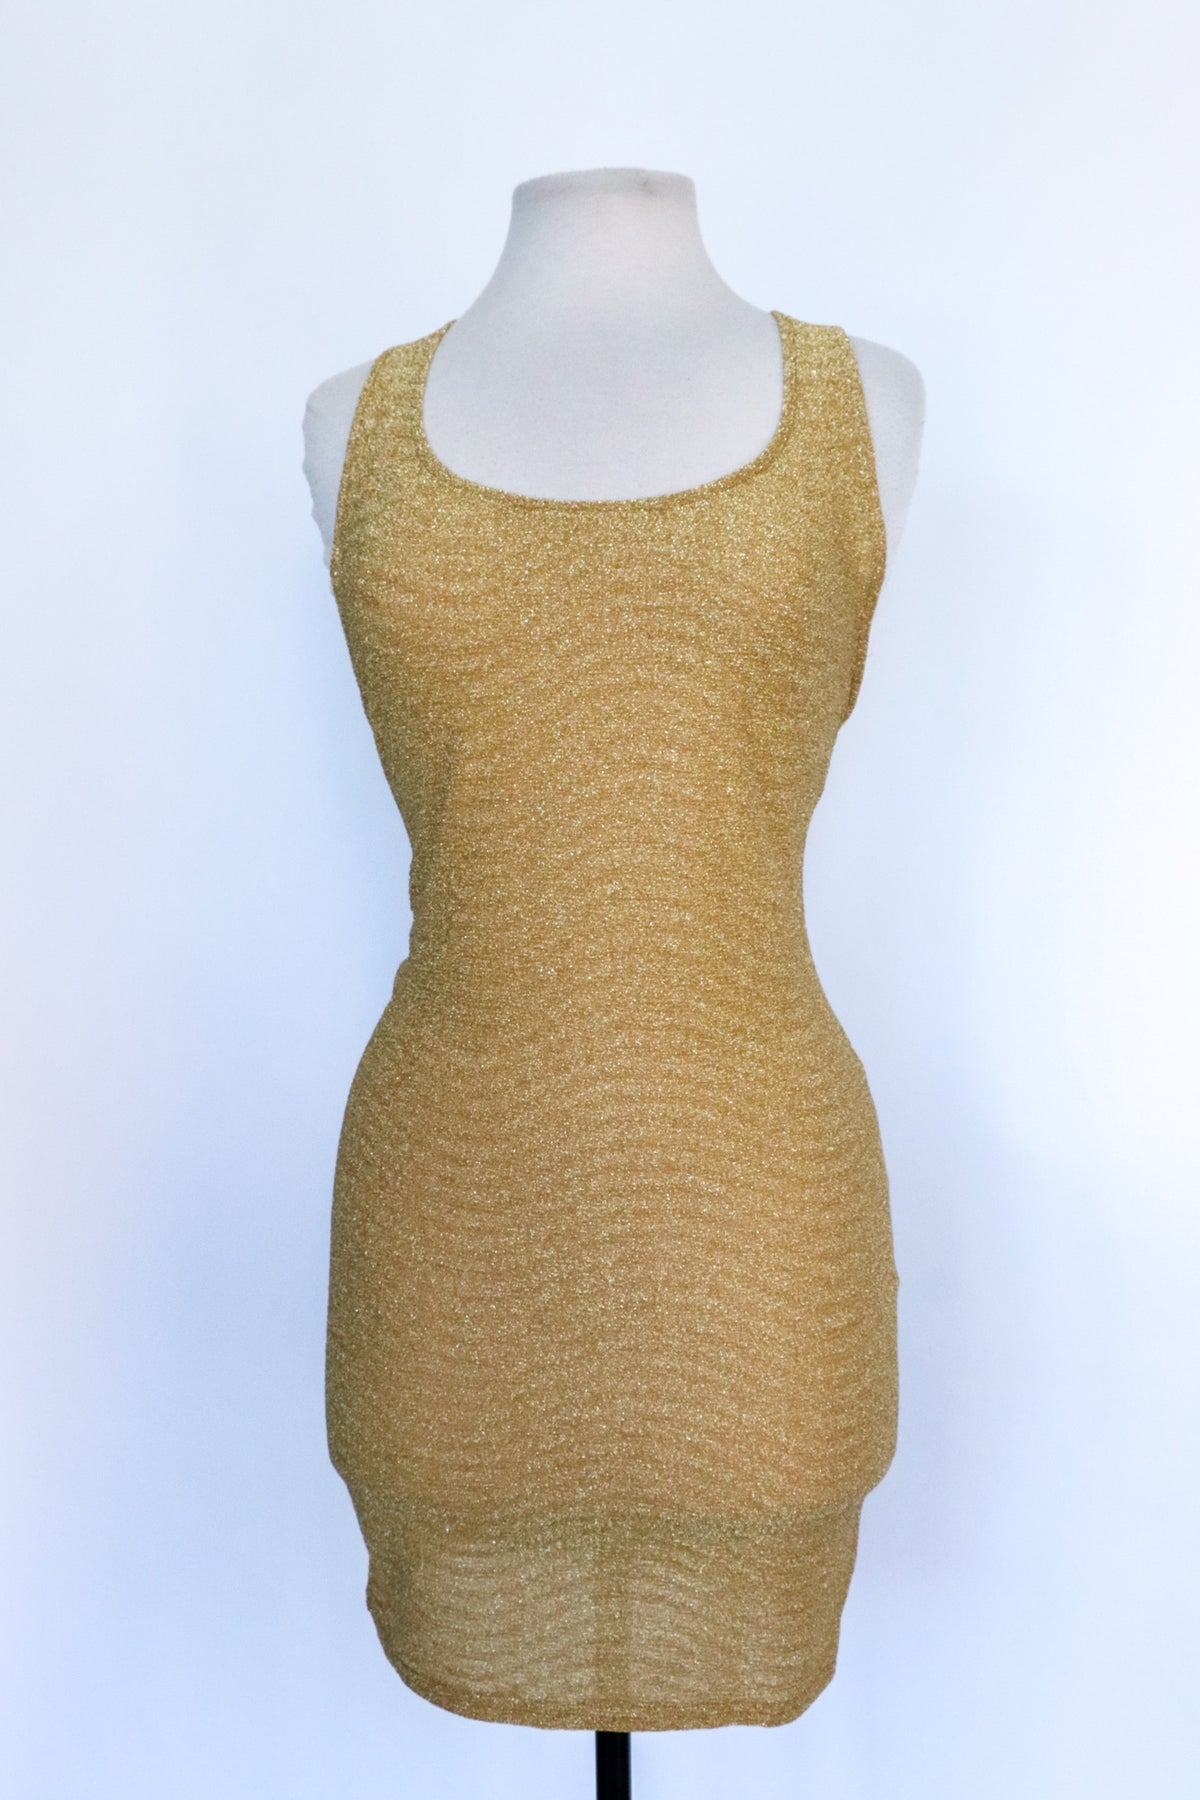 Naked Wardrobe - Gold Mini Dress